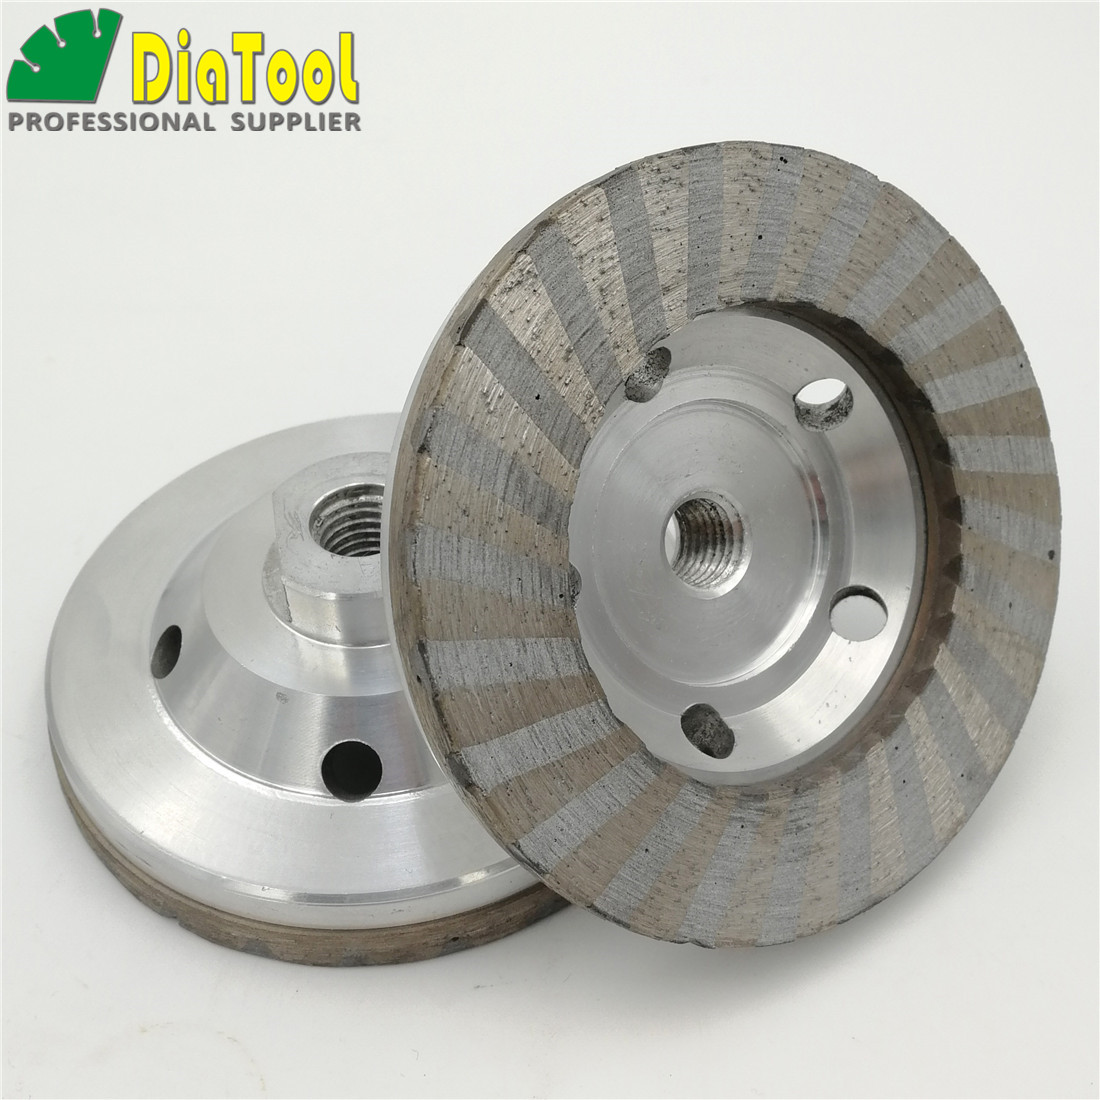 DIATOOL 2pcs Dia100mm/4 Aluminum Based Diamond Grinding Cup Wheel M14 Thread #50 #100 available Grinding Disc Granite Marble<br>